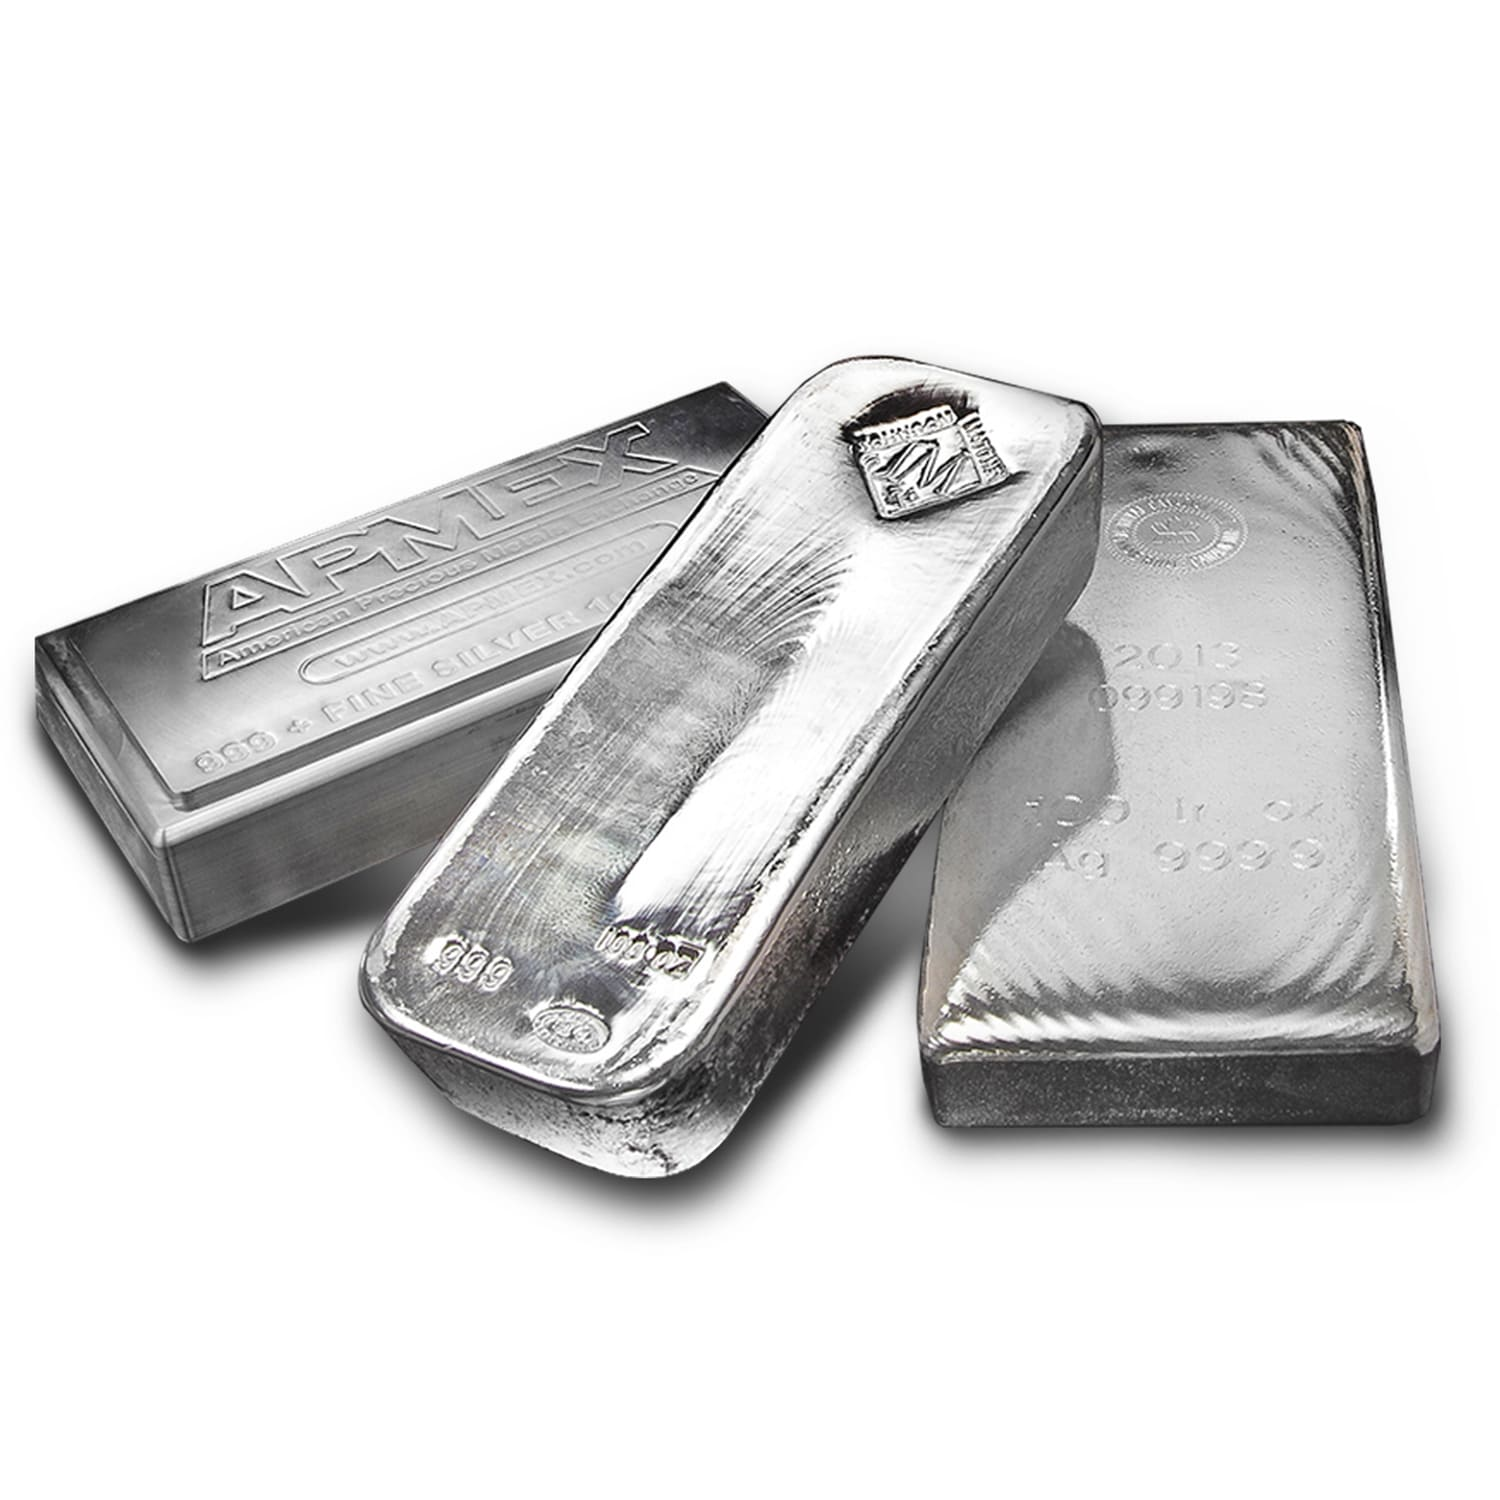 100.35 oz Silver Bar - Secondary Market